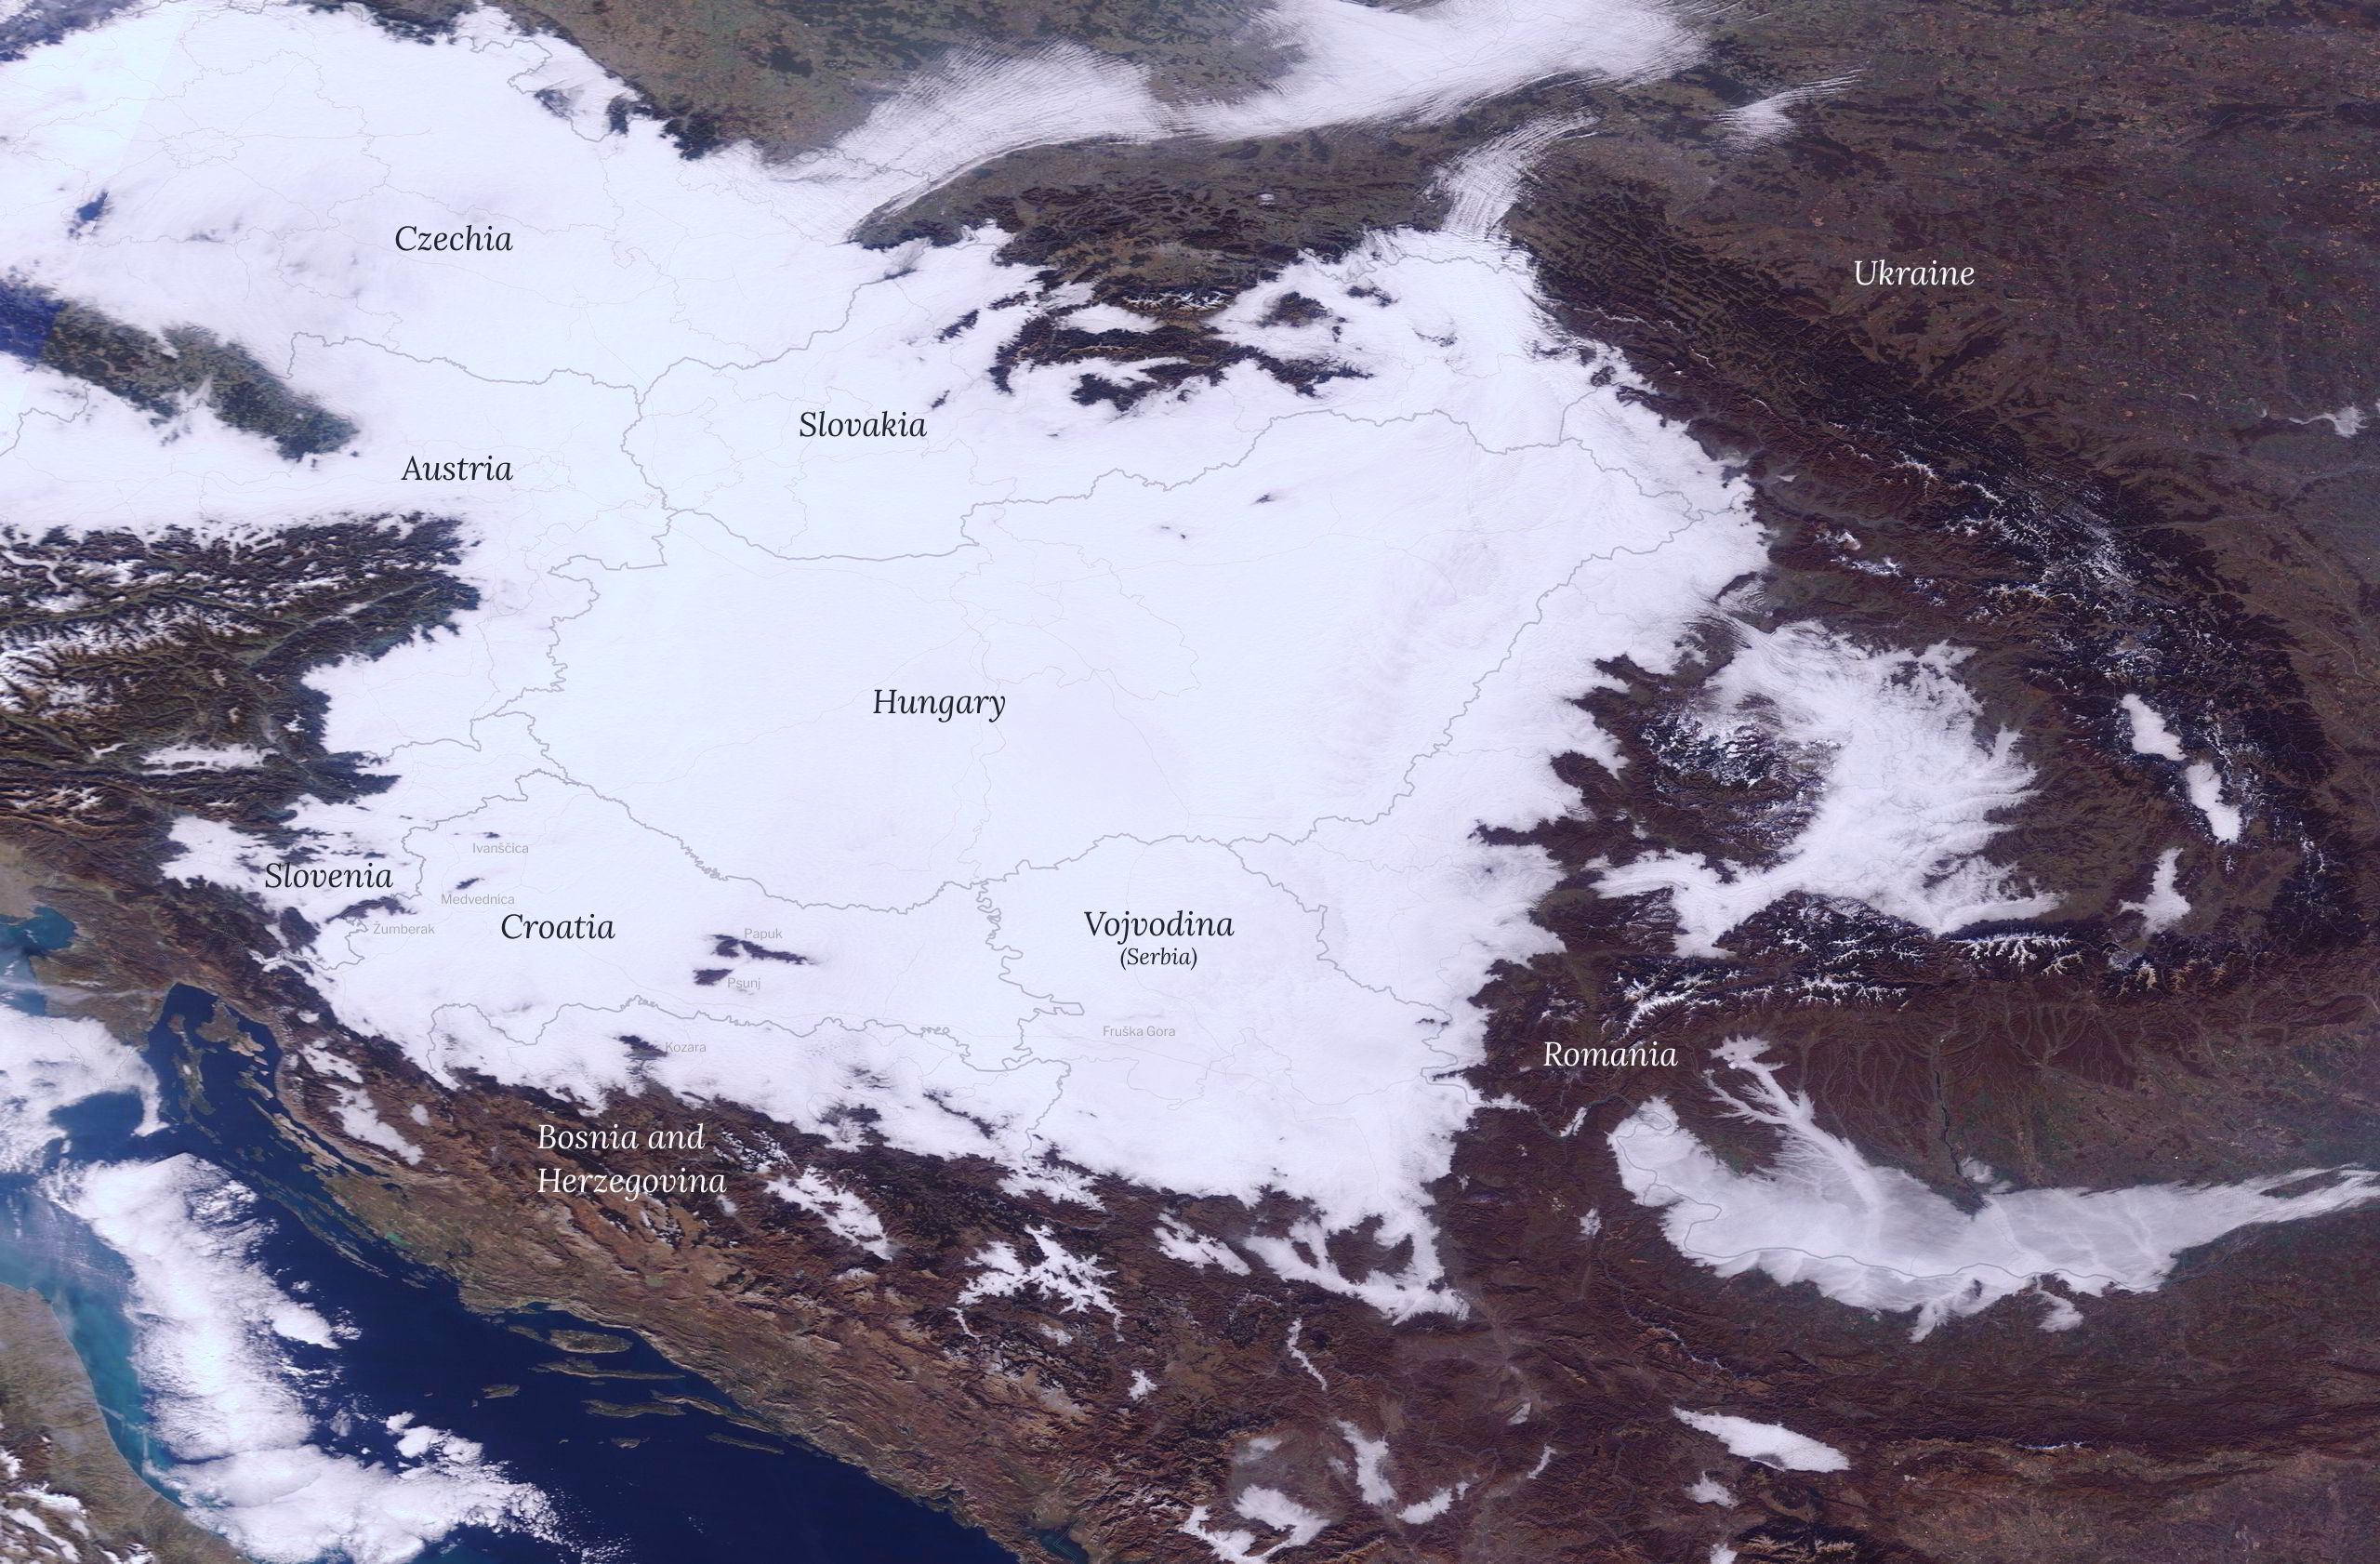 Mountain tops above fog resemble ancient Pannonian Sea islands